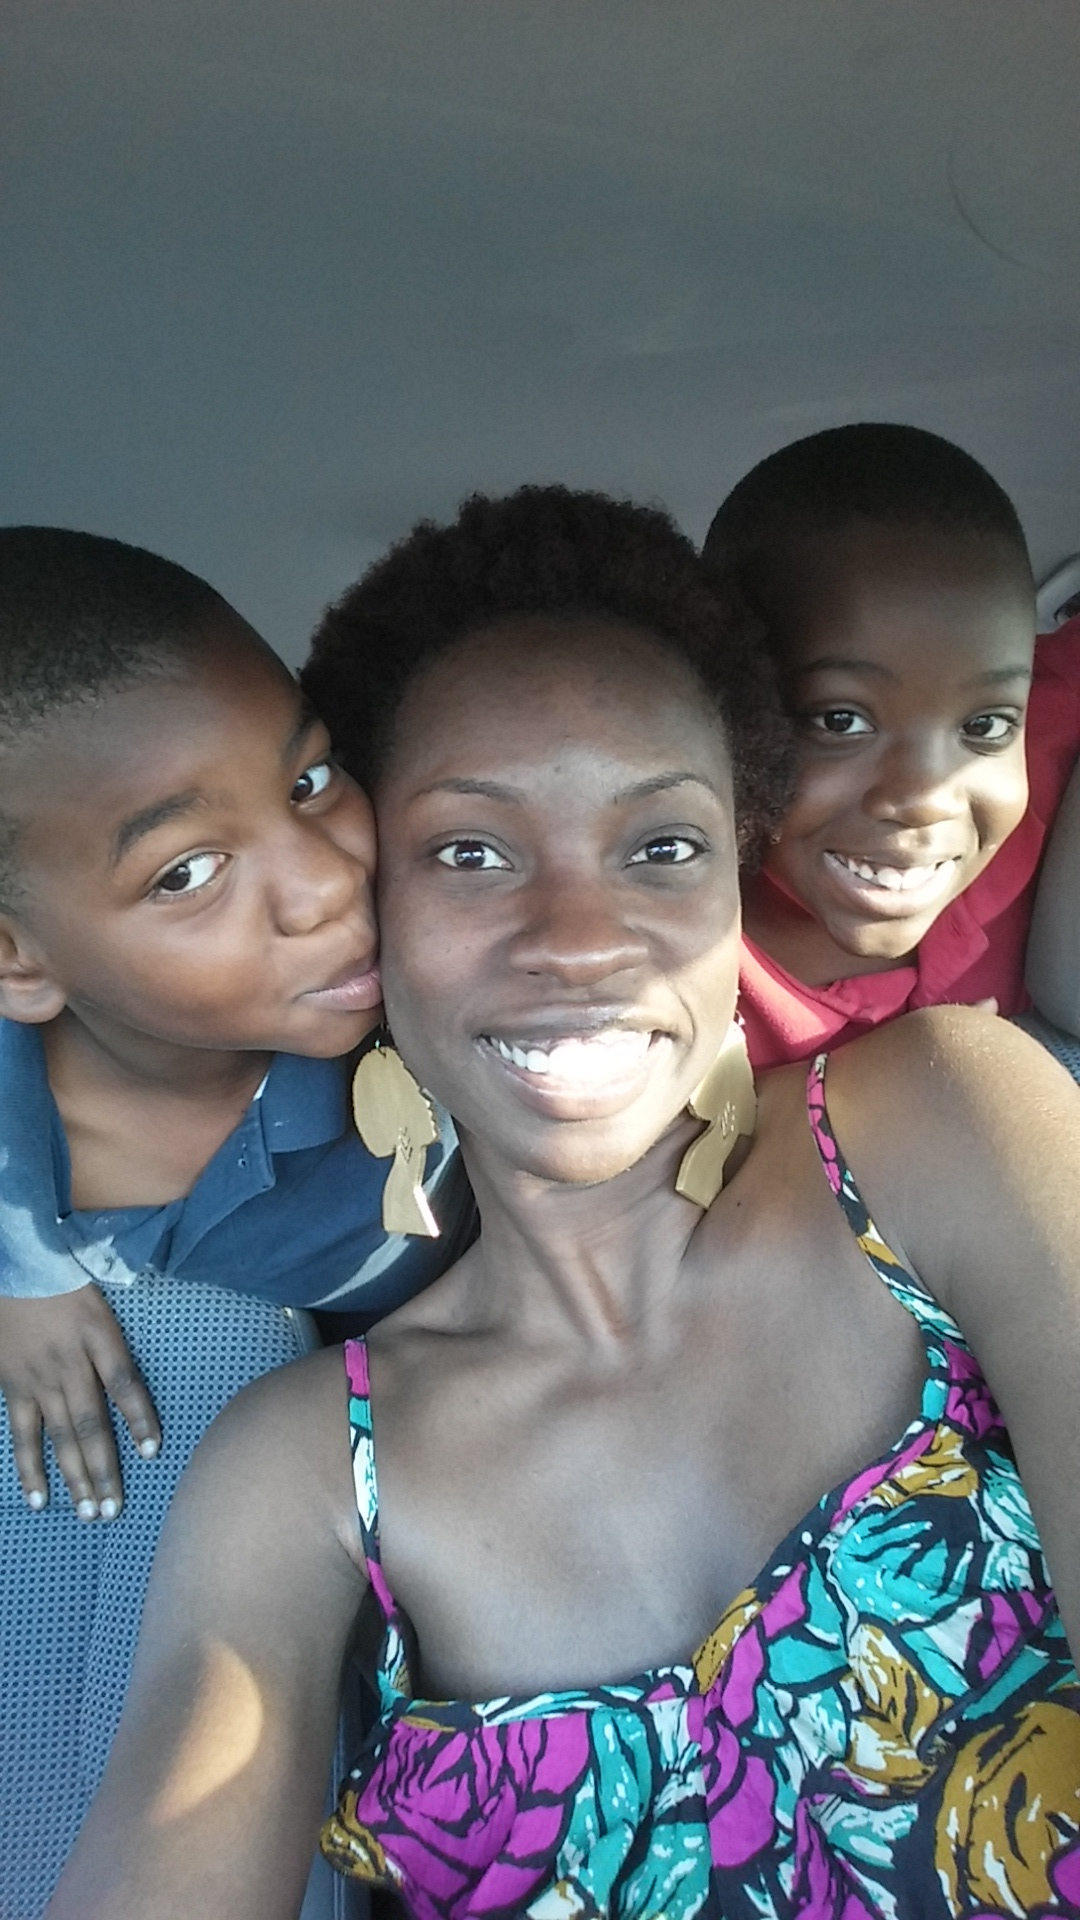 Two of my favorite black boys (my cousins)